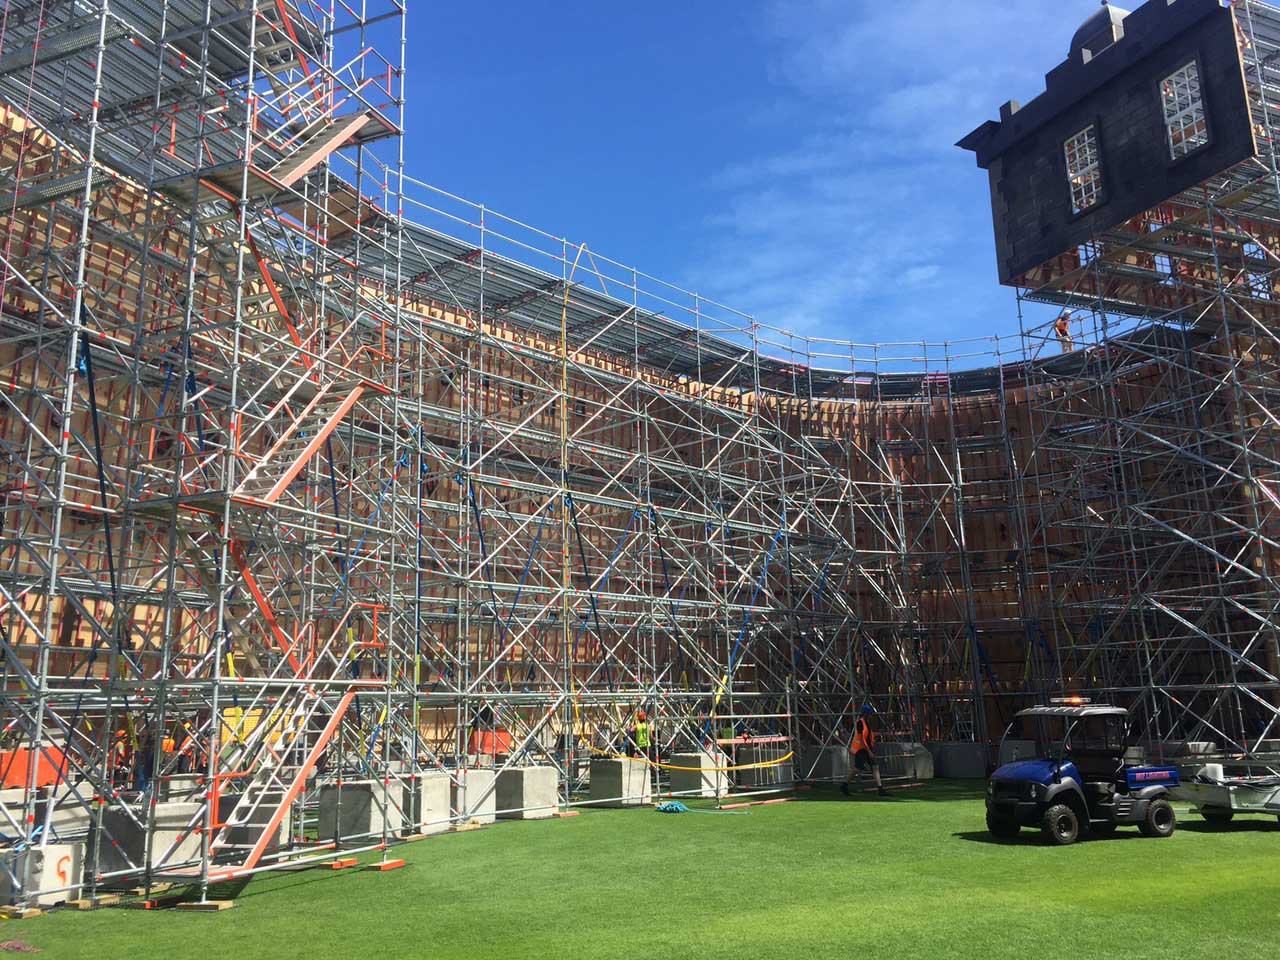 Behind the castle cladding a safe stronghold constructed of Layher scaffolding